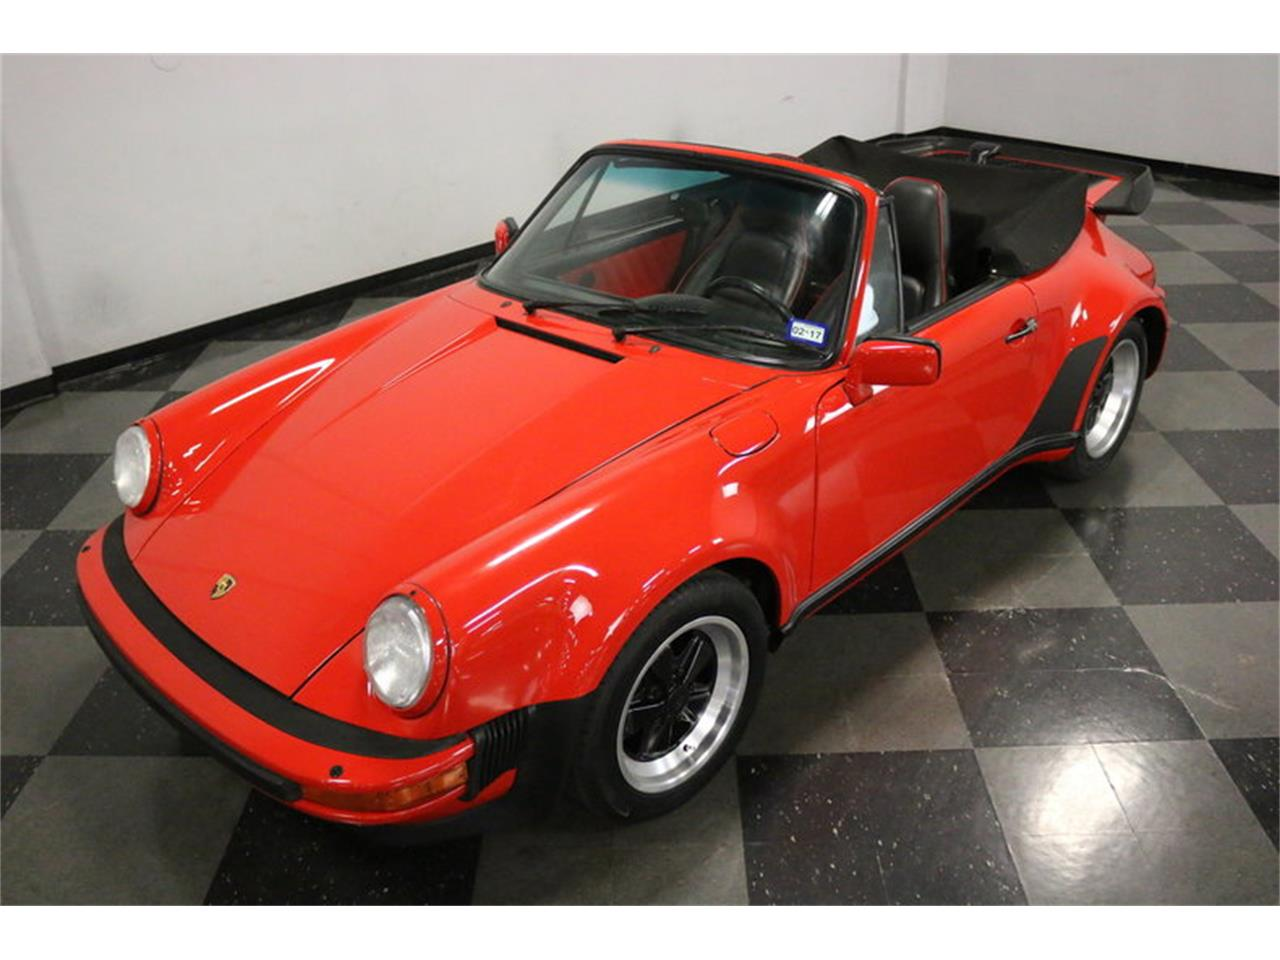 Large Picture of 1988 Porsche 911 located in Ft Worth Texas - $99,995.00 Offered by Streetside Classics - Dallas / Fort Worth - LBK3